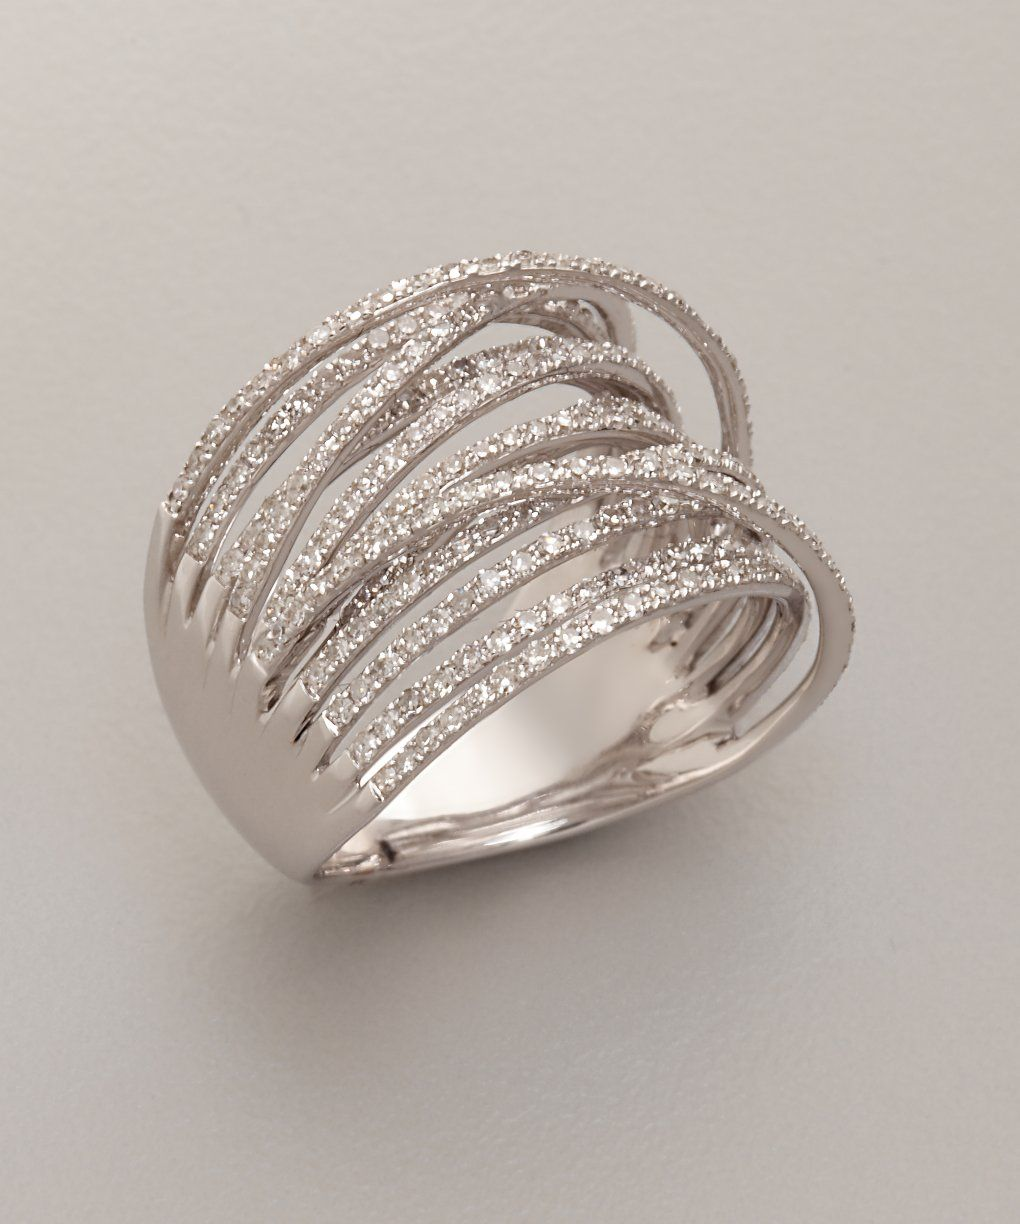 Diamond And White Gold 'martha Graham' Ring… Mr Right Sure Knows My